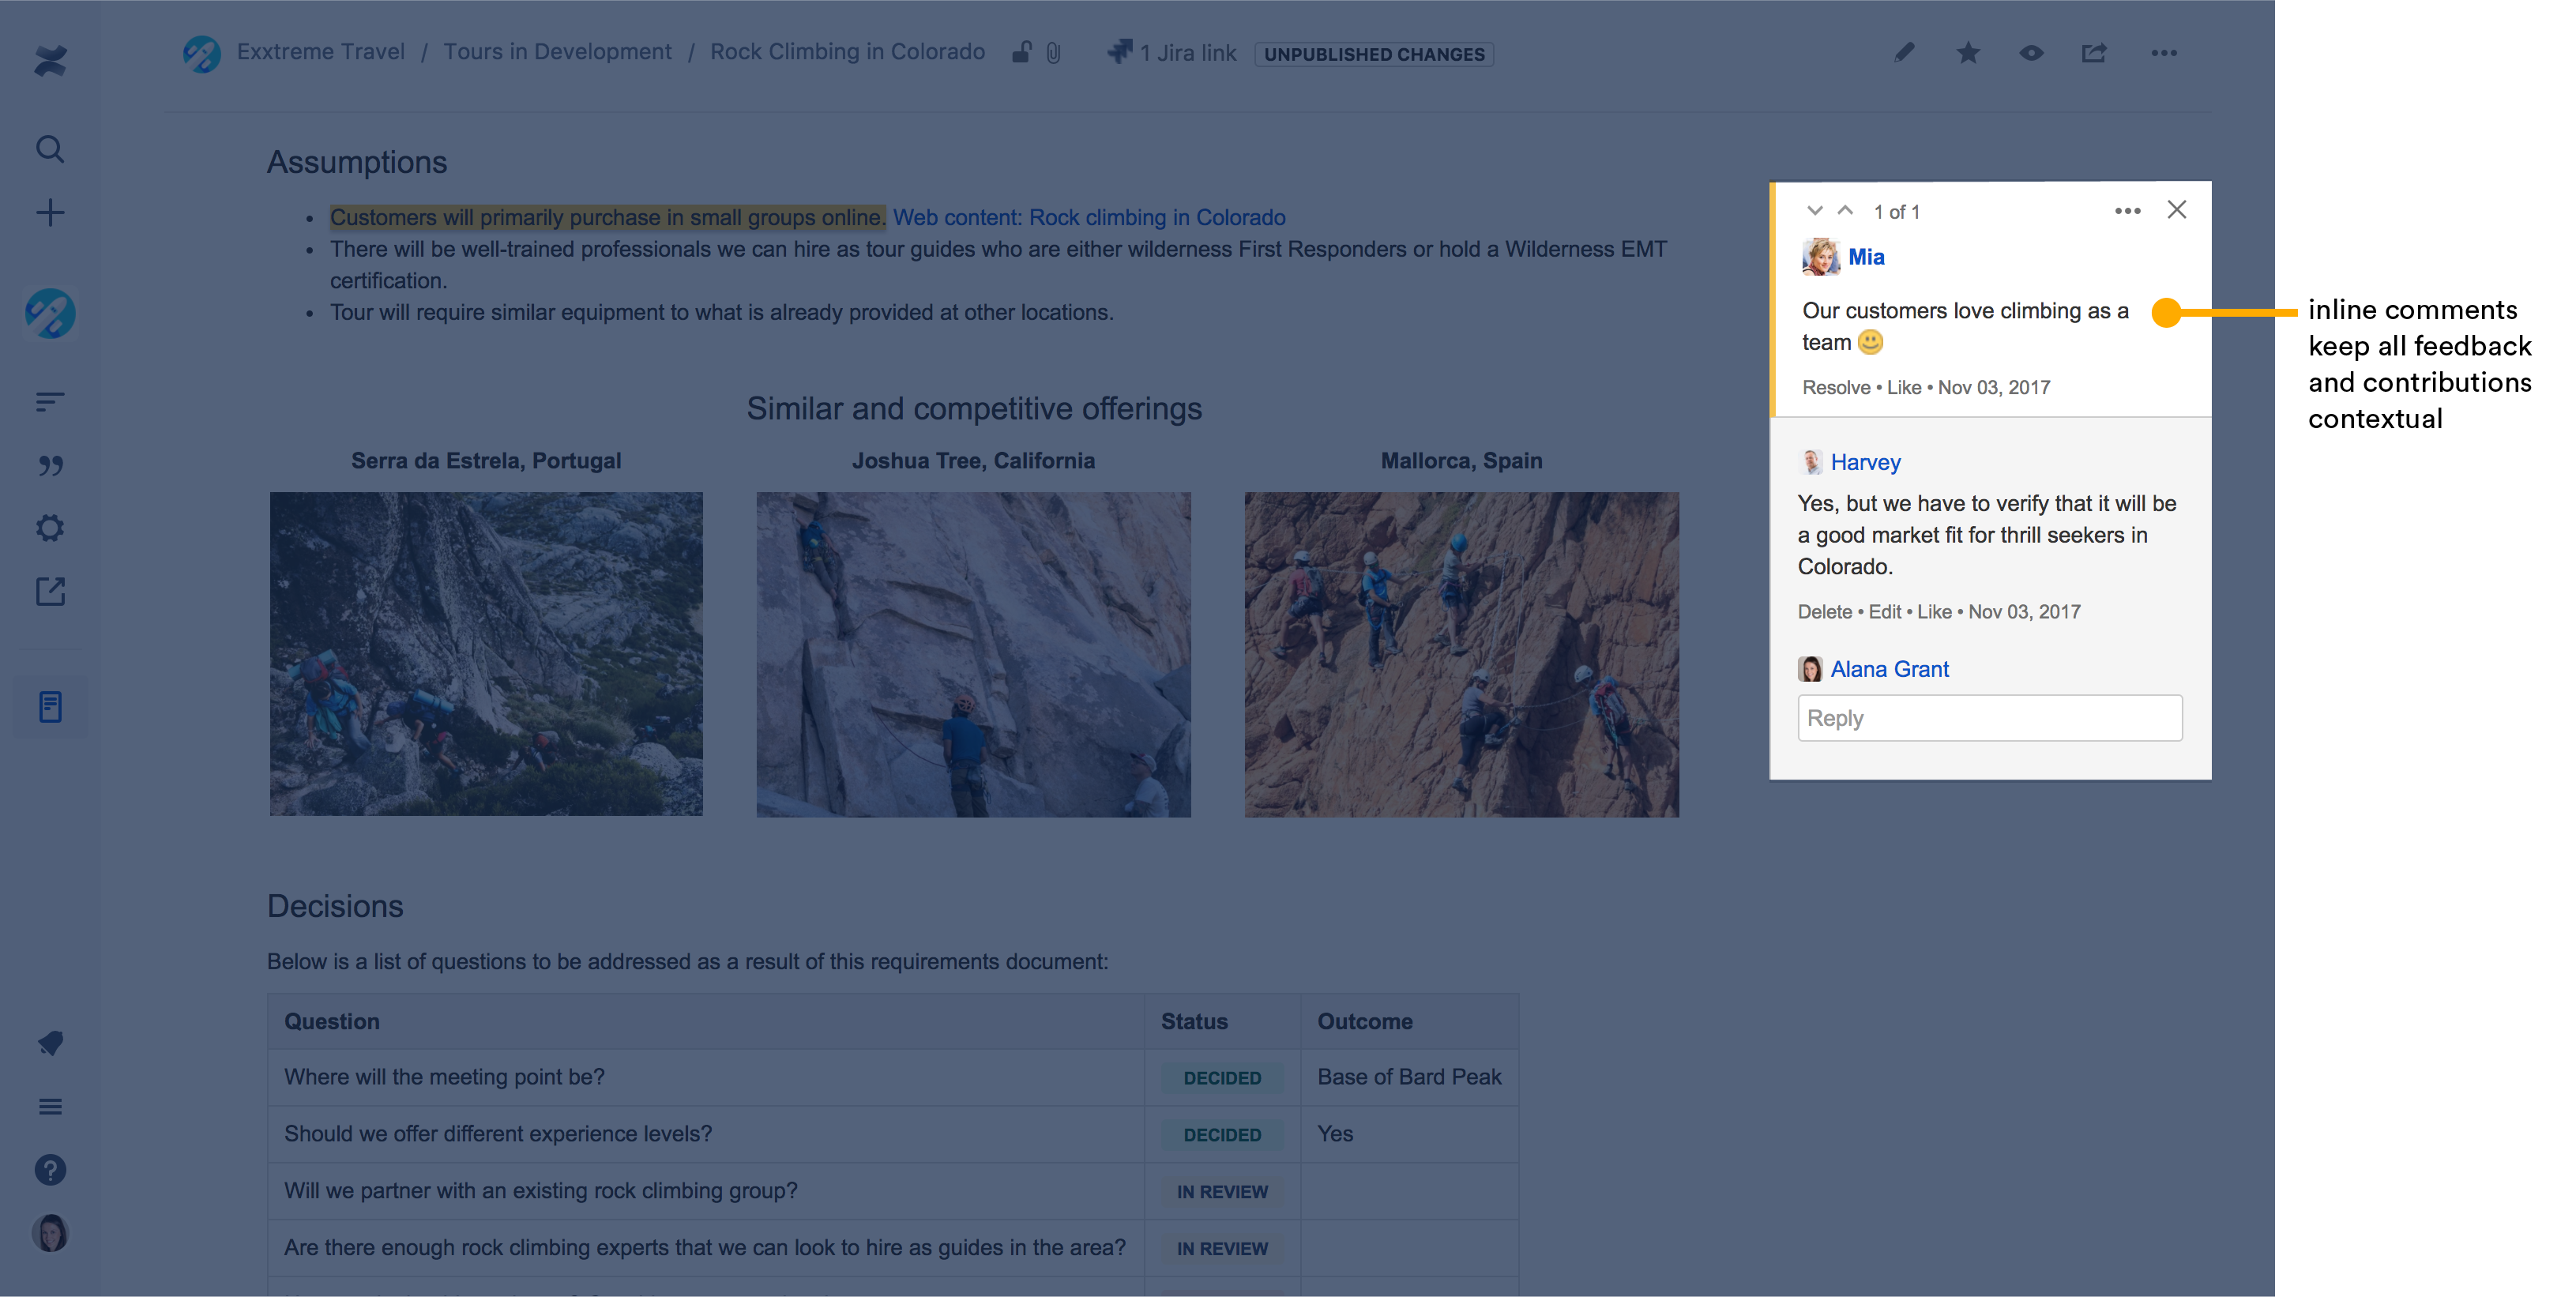 Confluence Software - Use in-line comments to provide contextual feedback on projects and pages